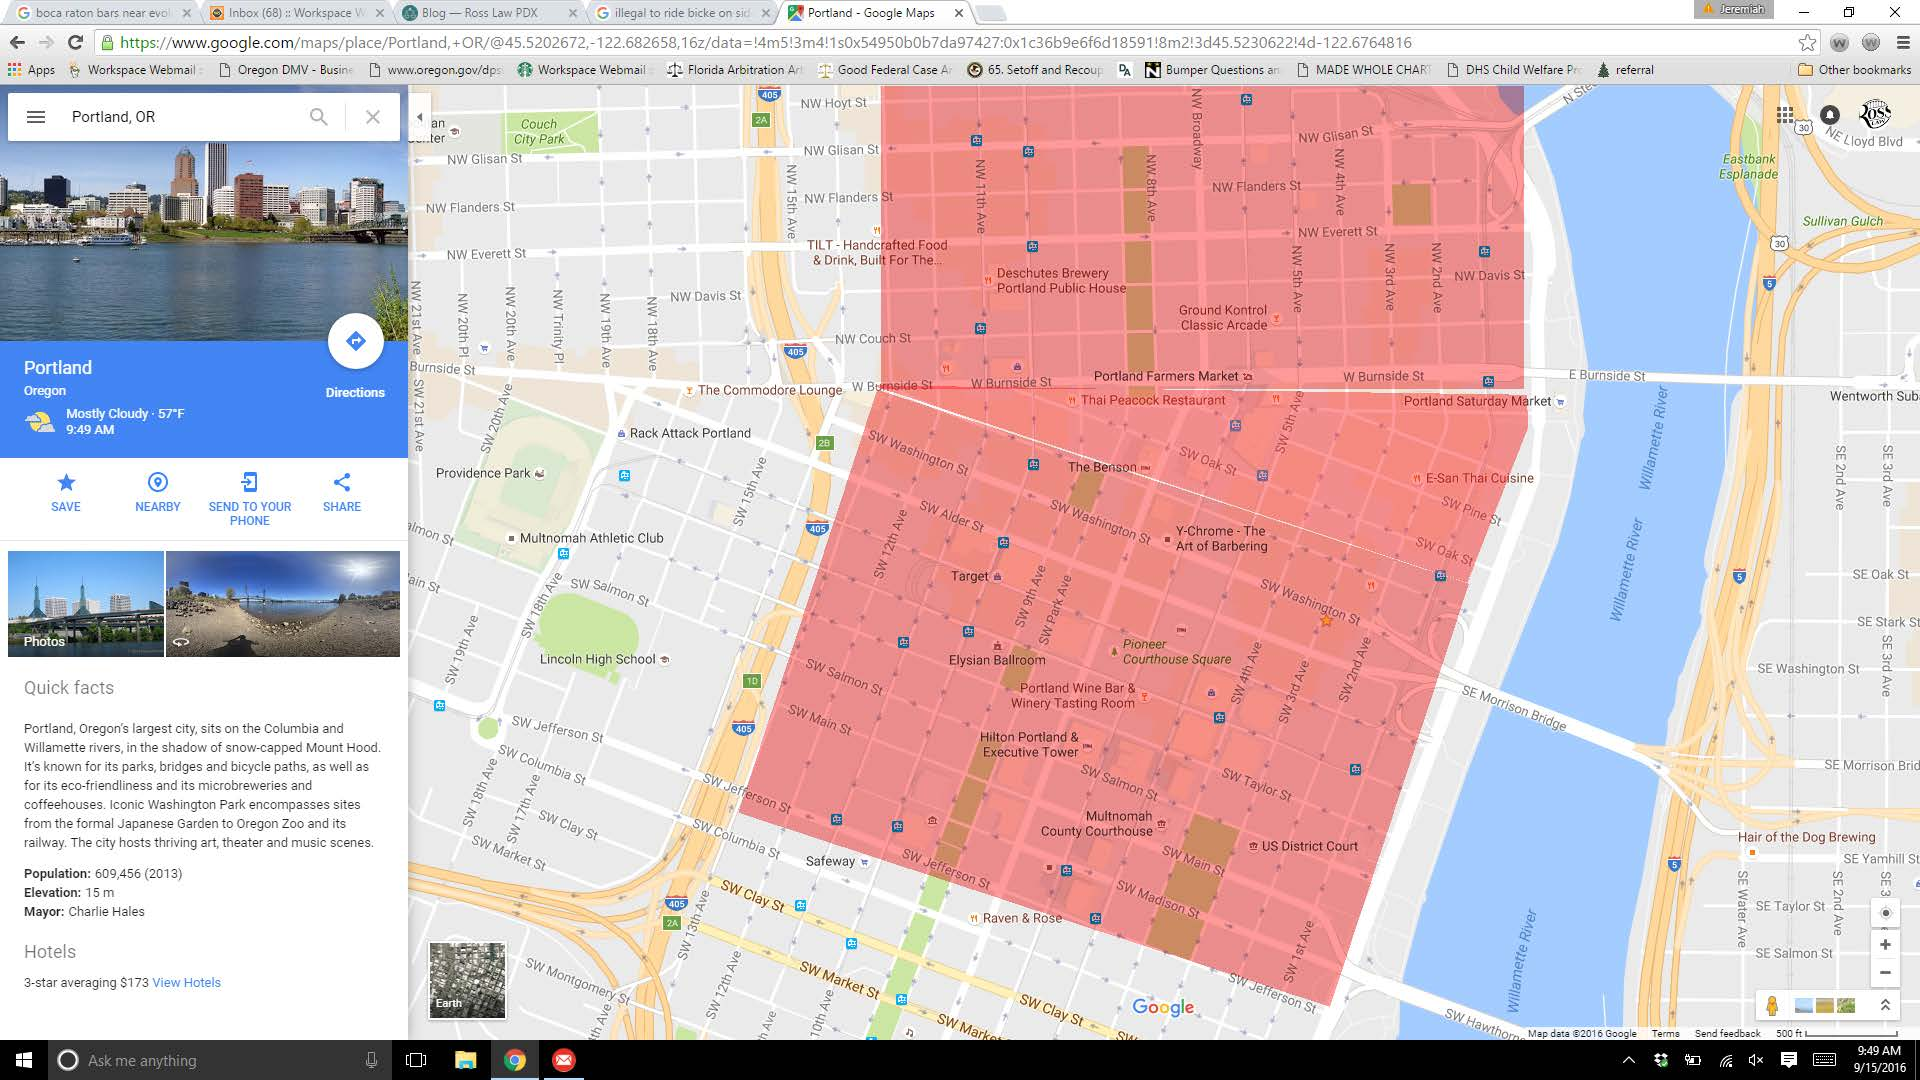 Is It Legal To Ride A Bicycle On A Downtown Portland Oregon Sidewalk Downtown Portland Hotels Map on